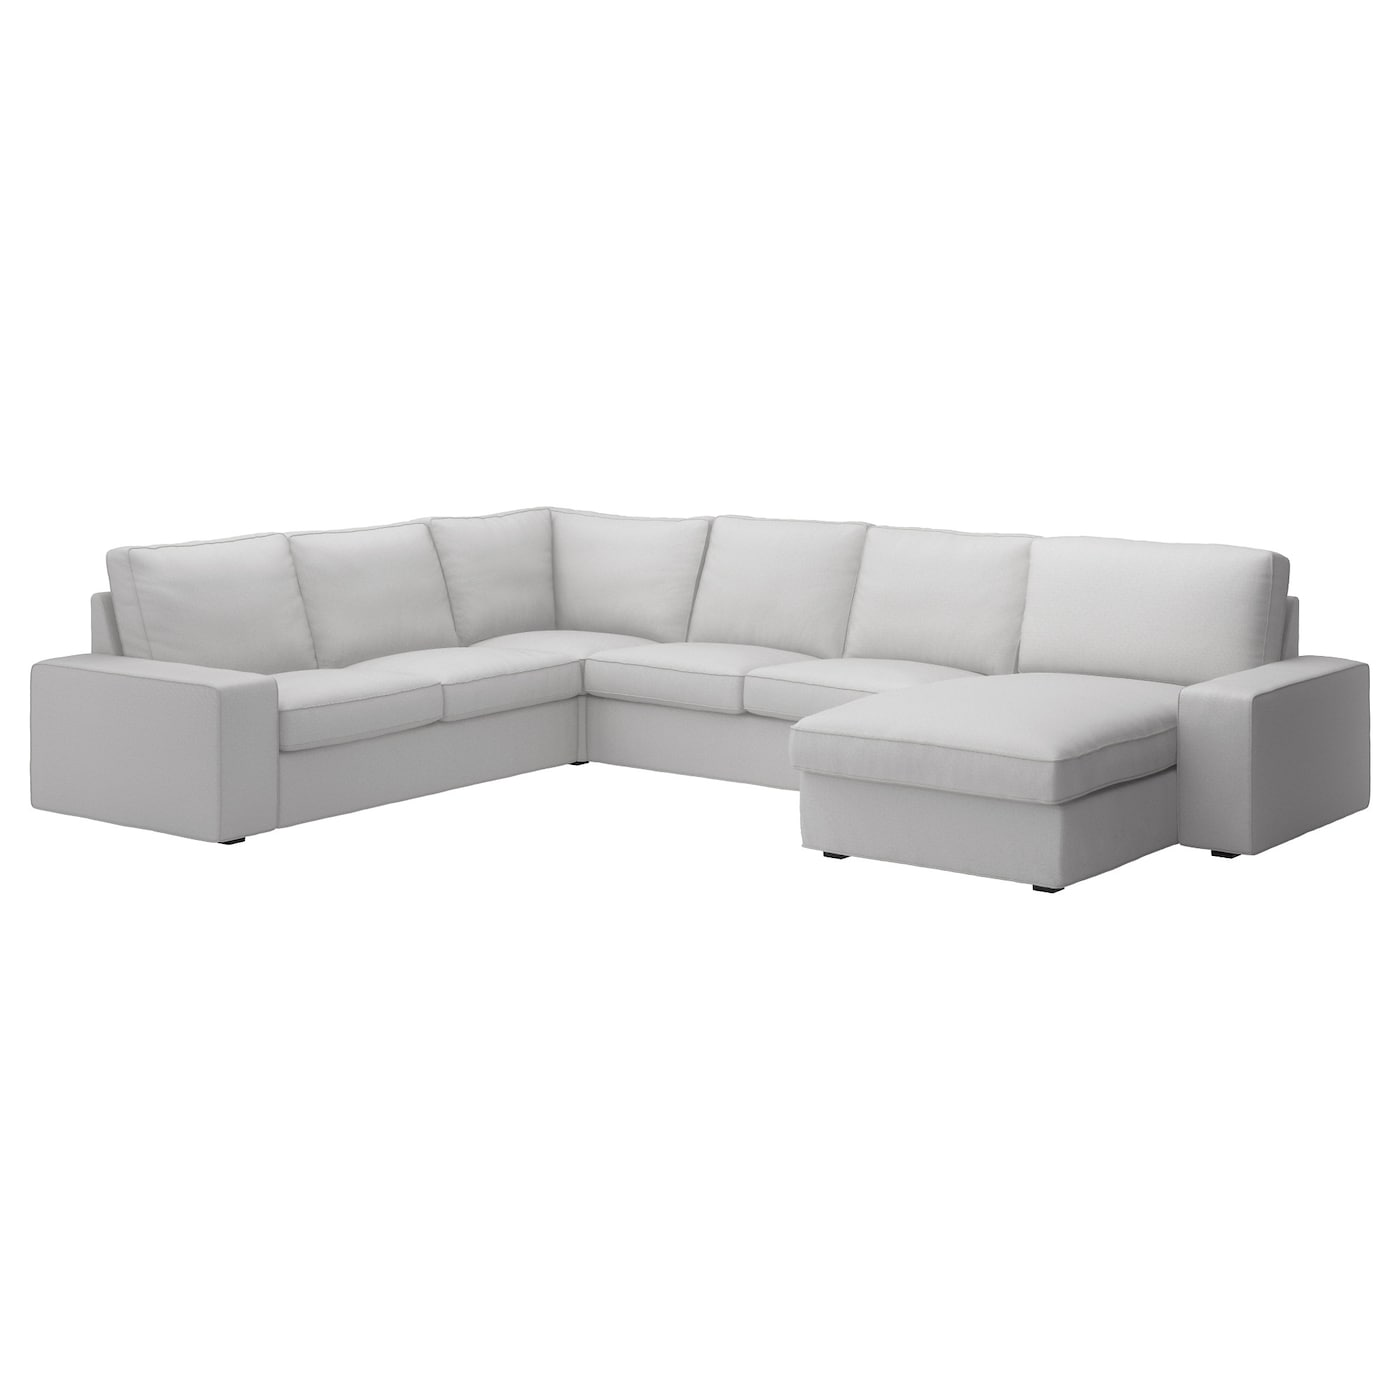 Kivik corner sofa 2 2 with chaise longue ramna light grey - Sofa rinconera con chaise longue ...